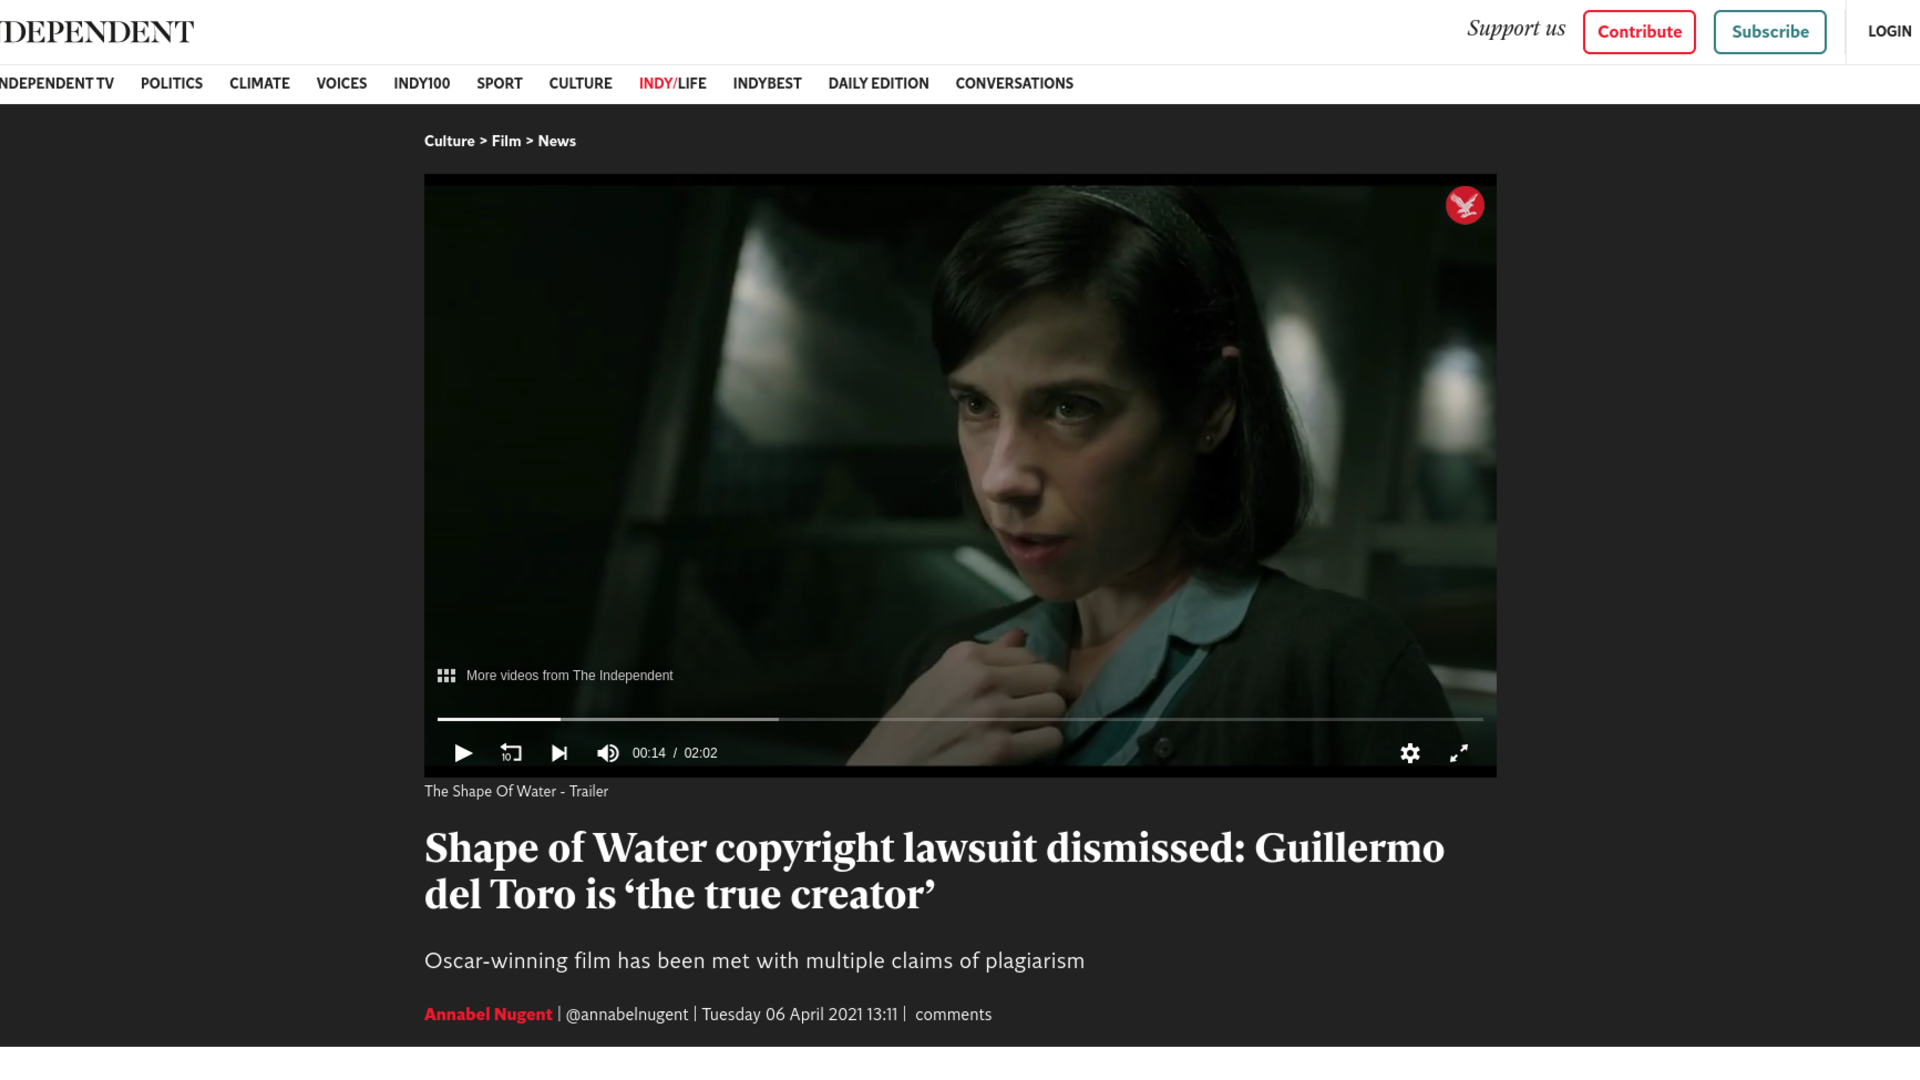 Fairness Rocks News Shape of Water copyright lawsuit dismissed: Guillermo del Toro is 'the true creator'